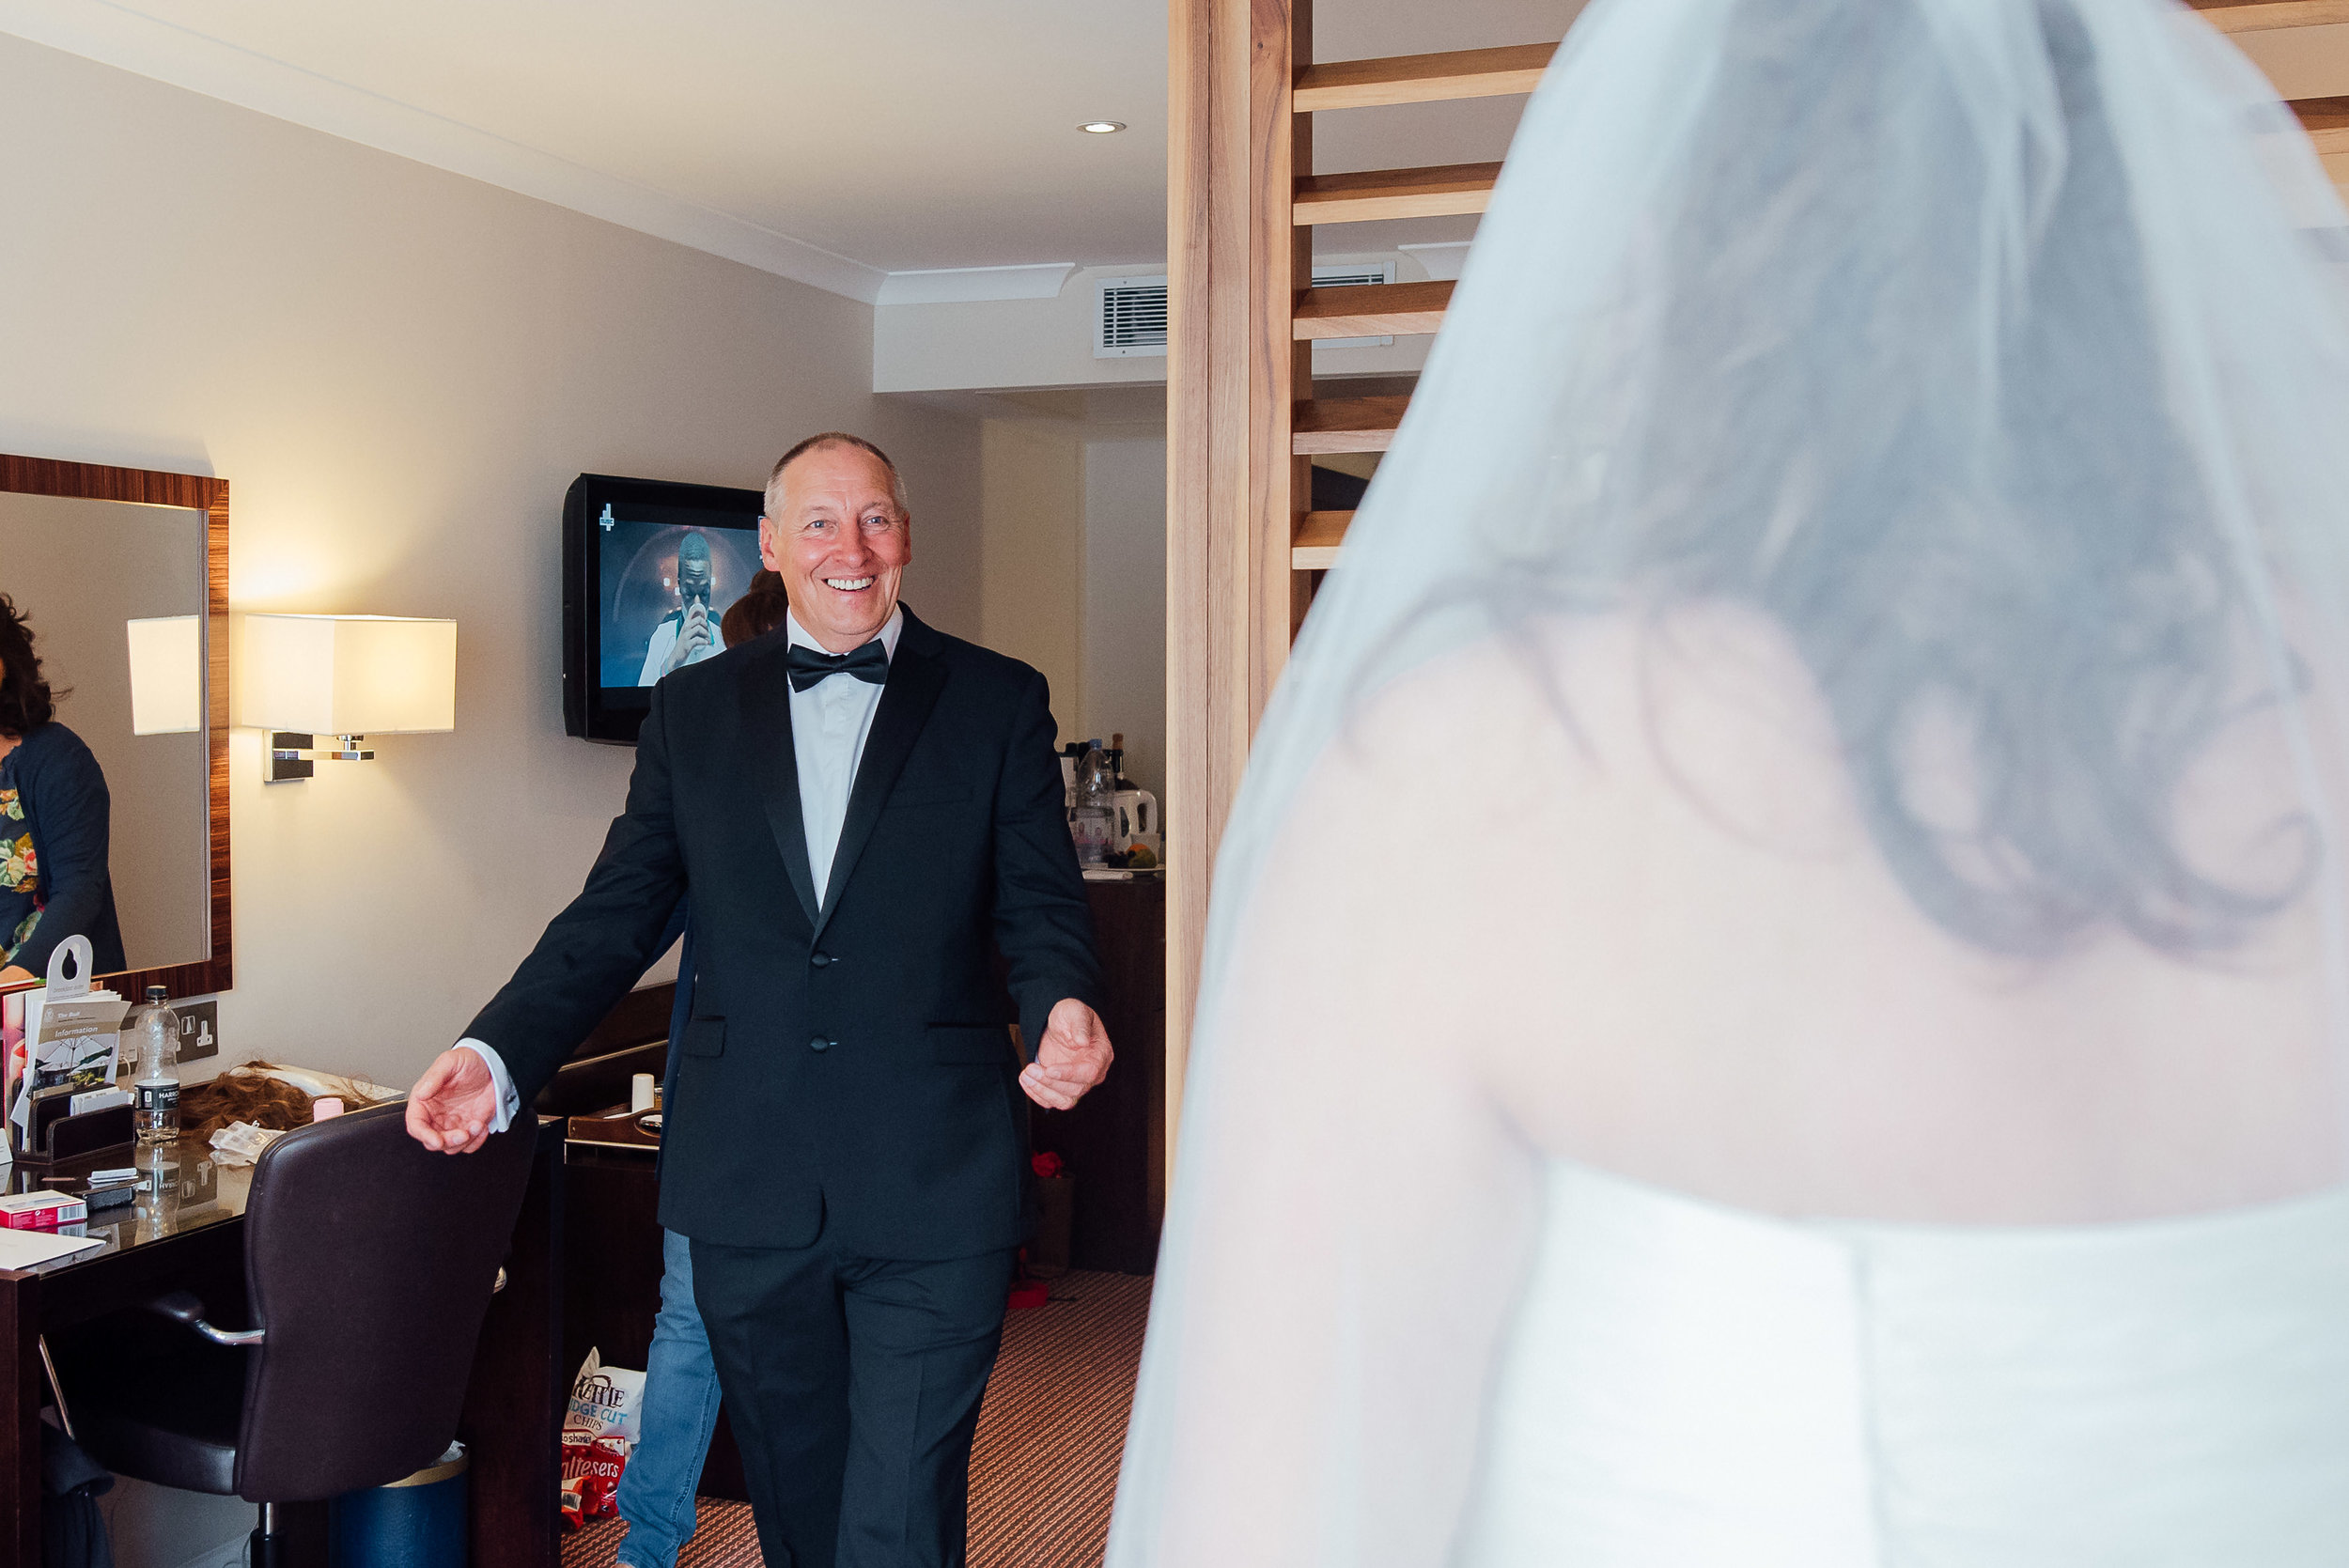 Heatherden Hal wedding at Pinewood Studios - Amy James Photography - Wedding photographer Hampshire - Documentary wedding photographer Hampshire Surrey and Berkshire